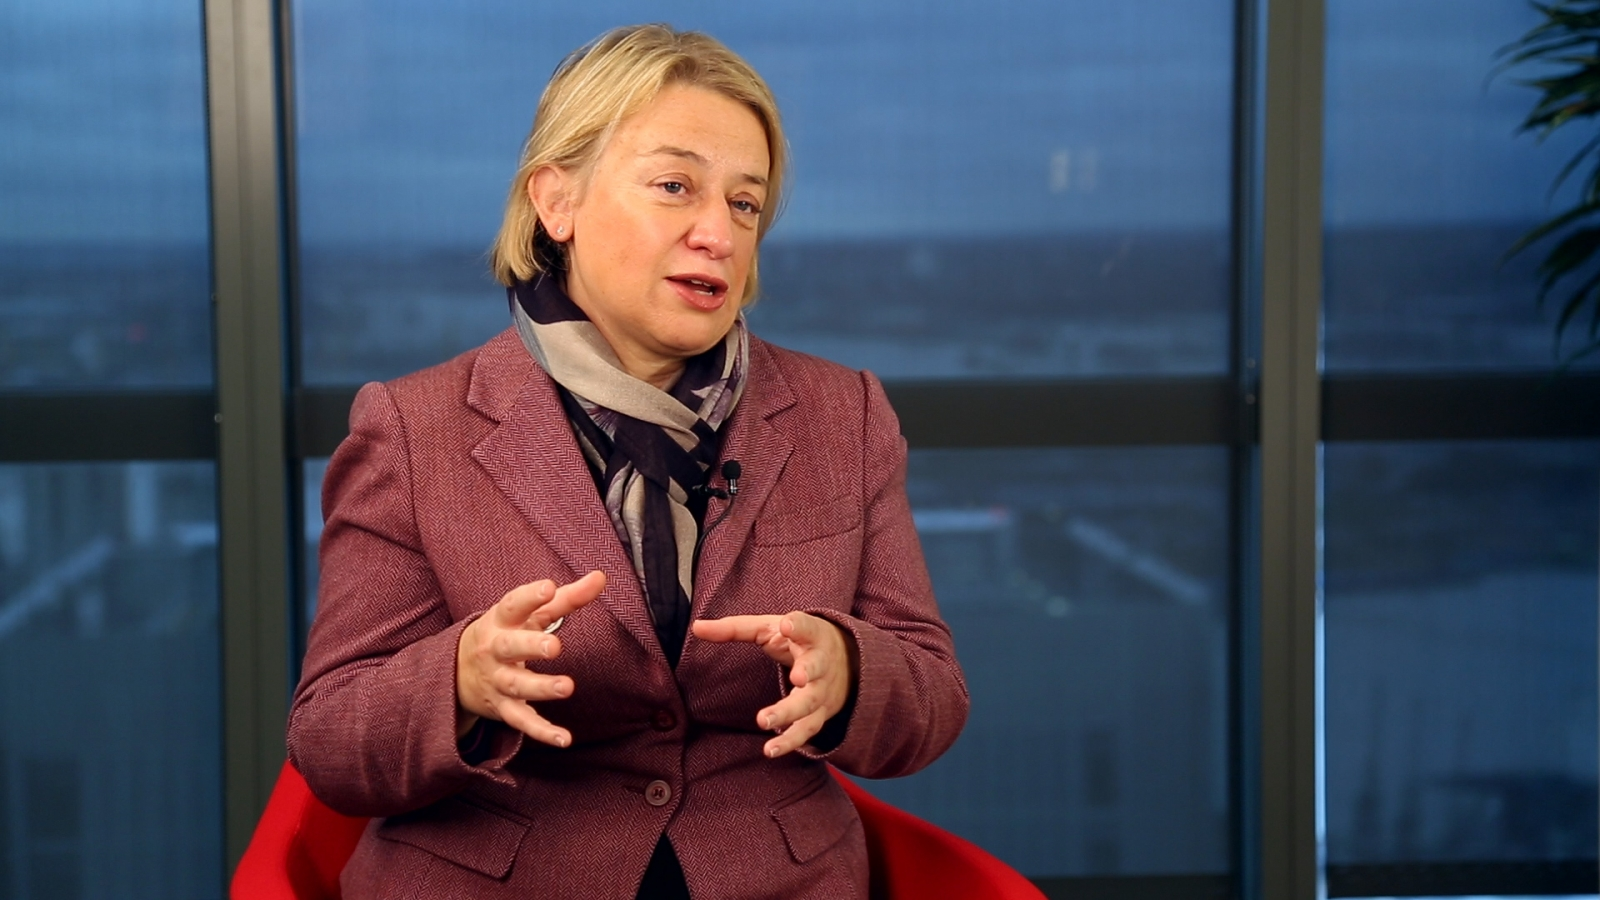 Natalie Bennett: Green Party doesn't need big personalities like Russell Brand and Nigel Farage